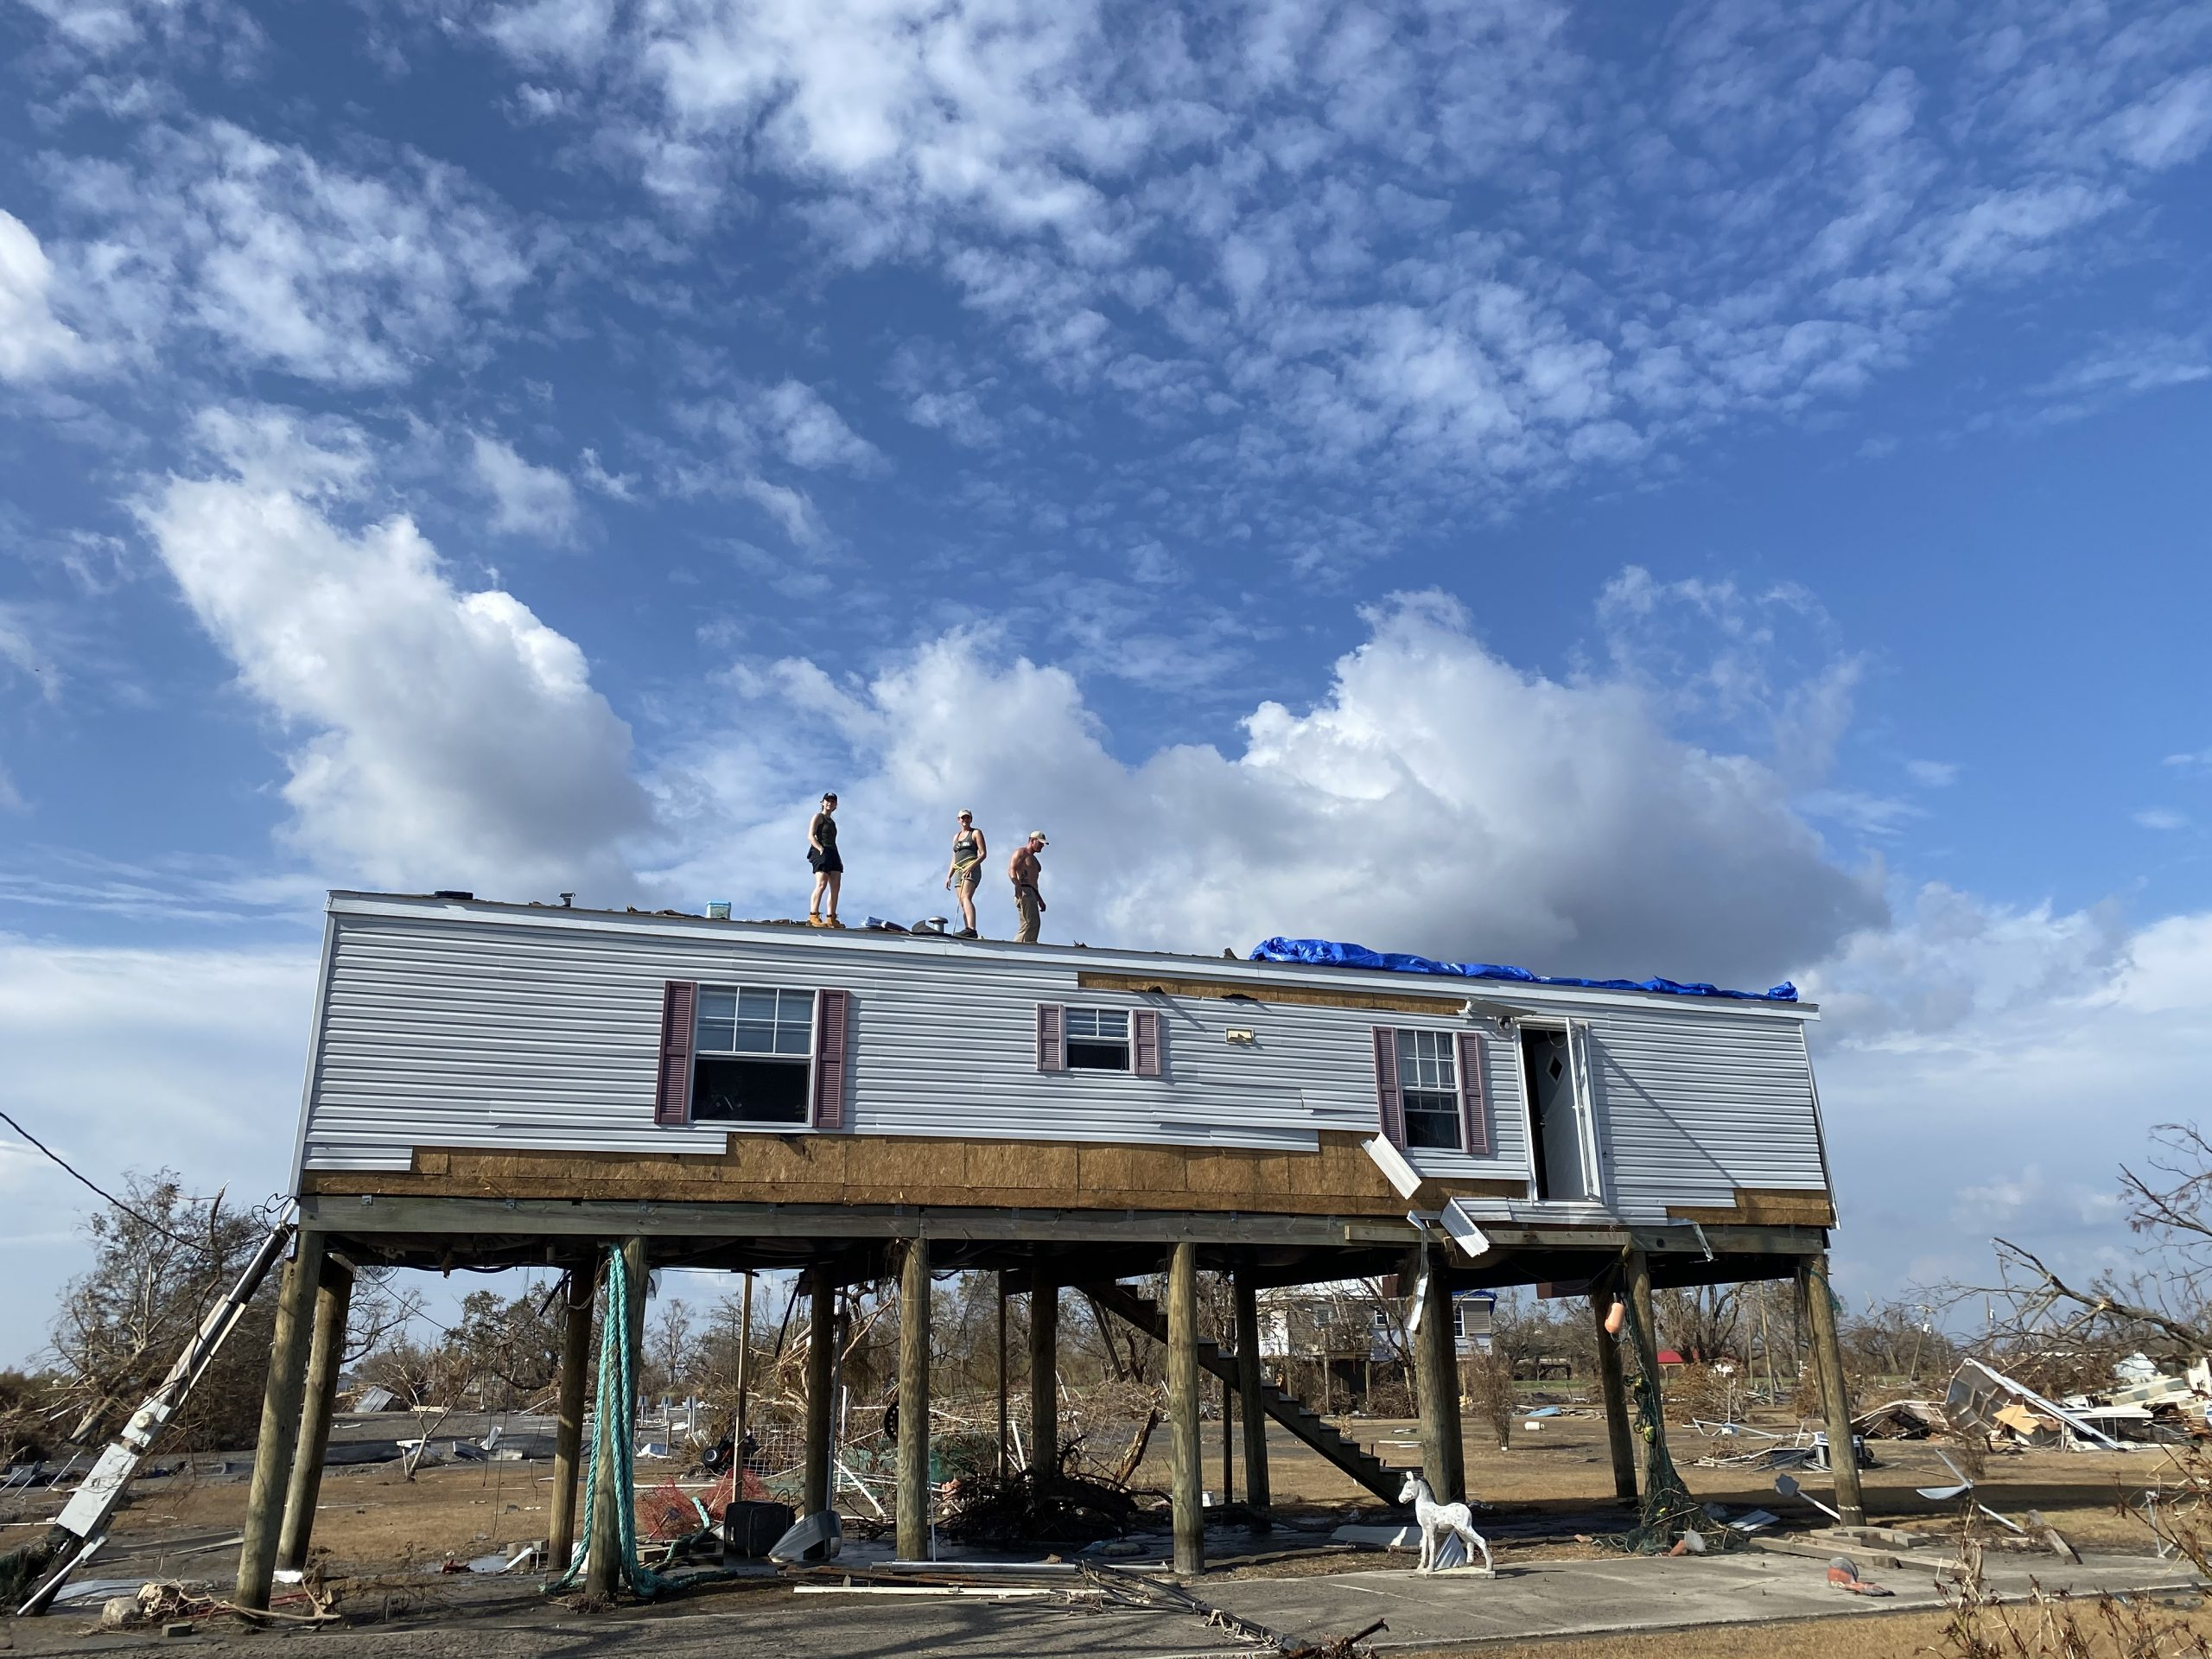 repairing roofs after hurricane laura